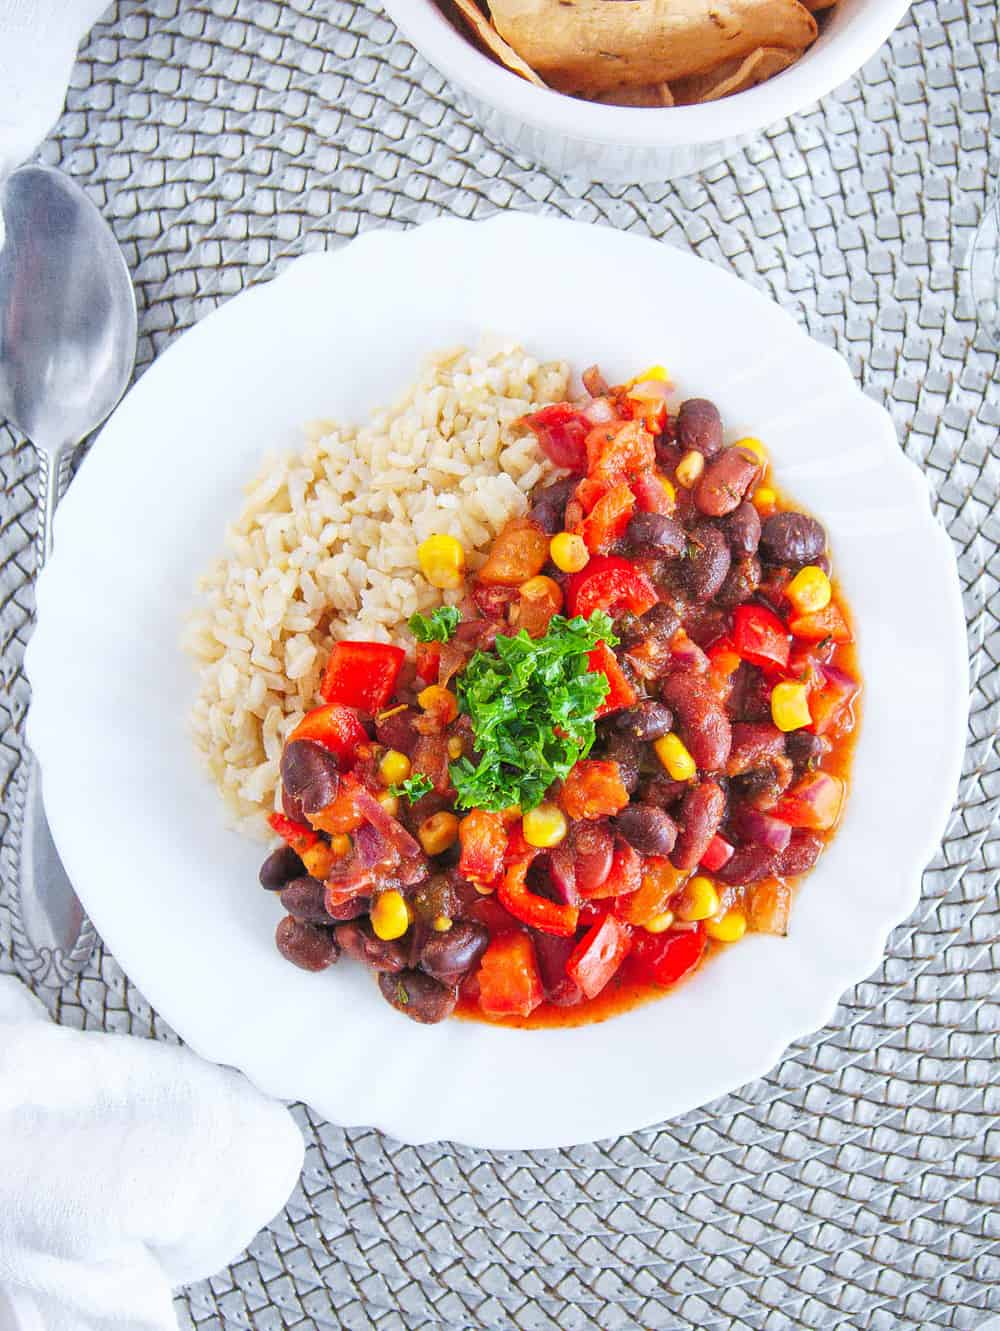 vegetarian stew recipe with beans and rice, served on a white plate with a spoon